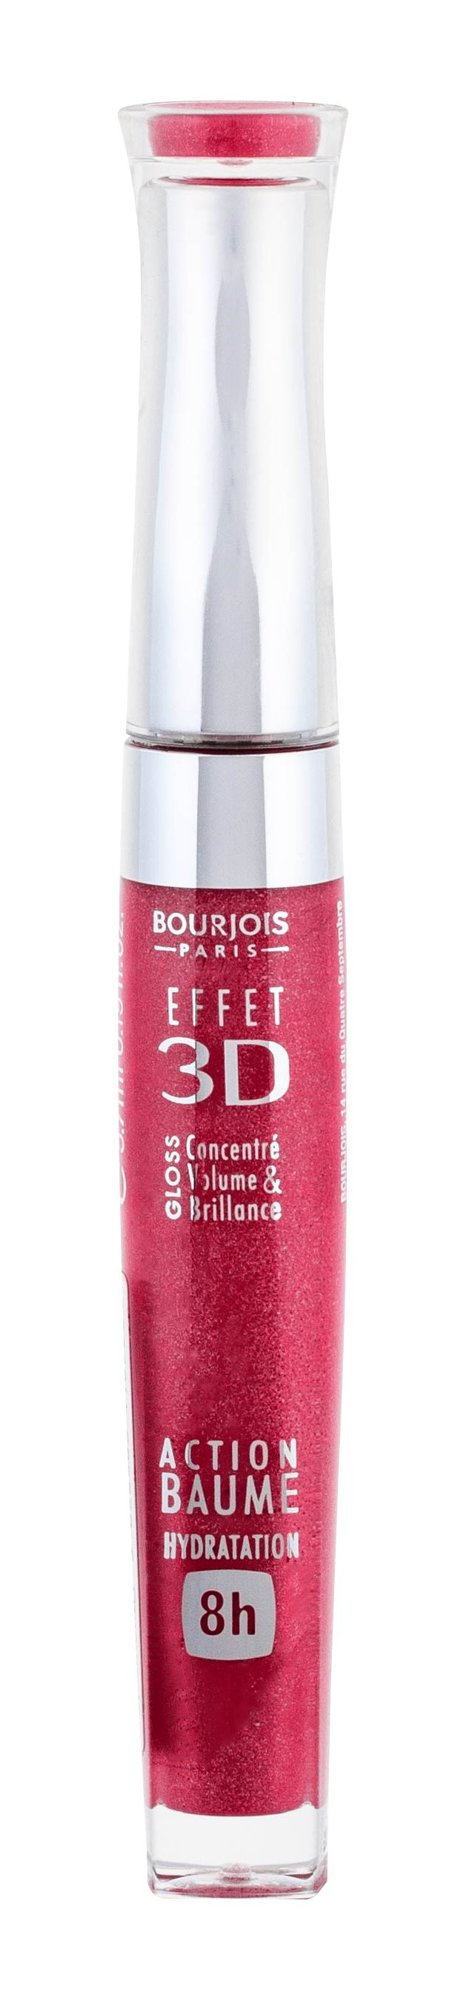 BOURJOIS Paris 3D Effet Cosmetic 5,7ml 06 Rouge Democratic